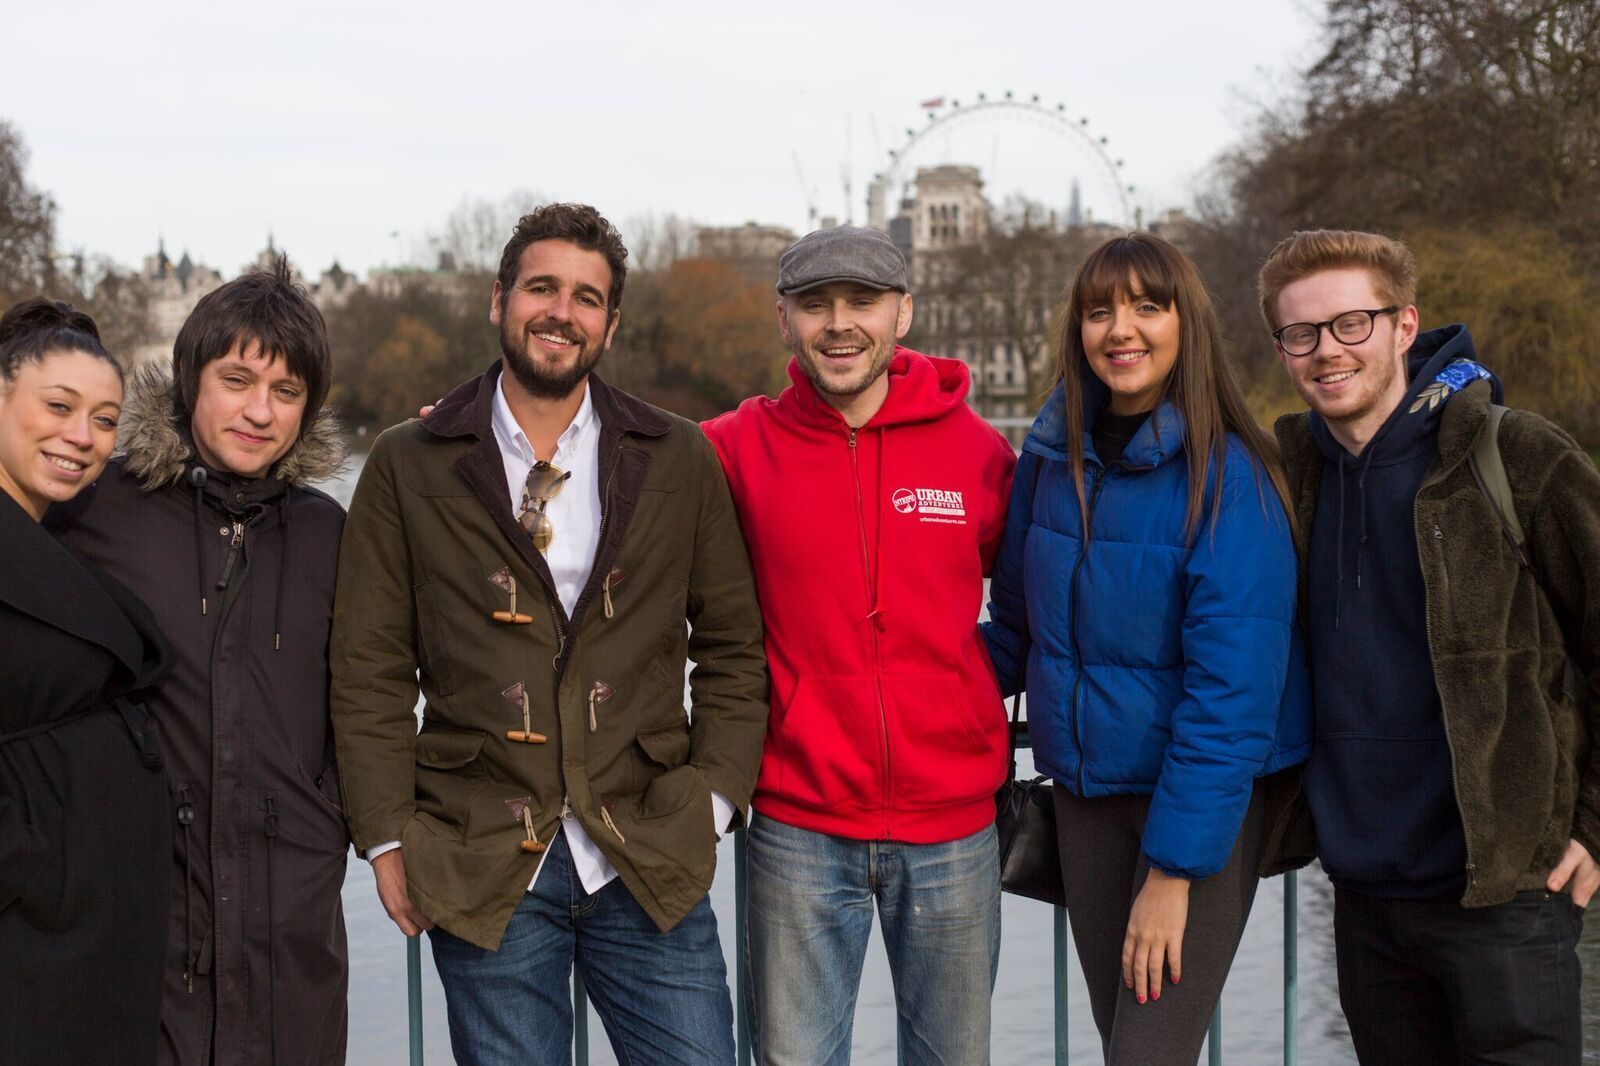 Tour group in London